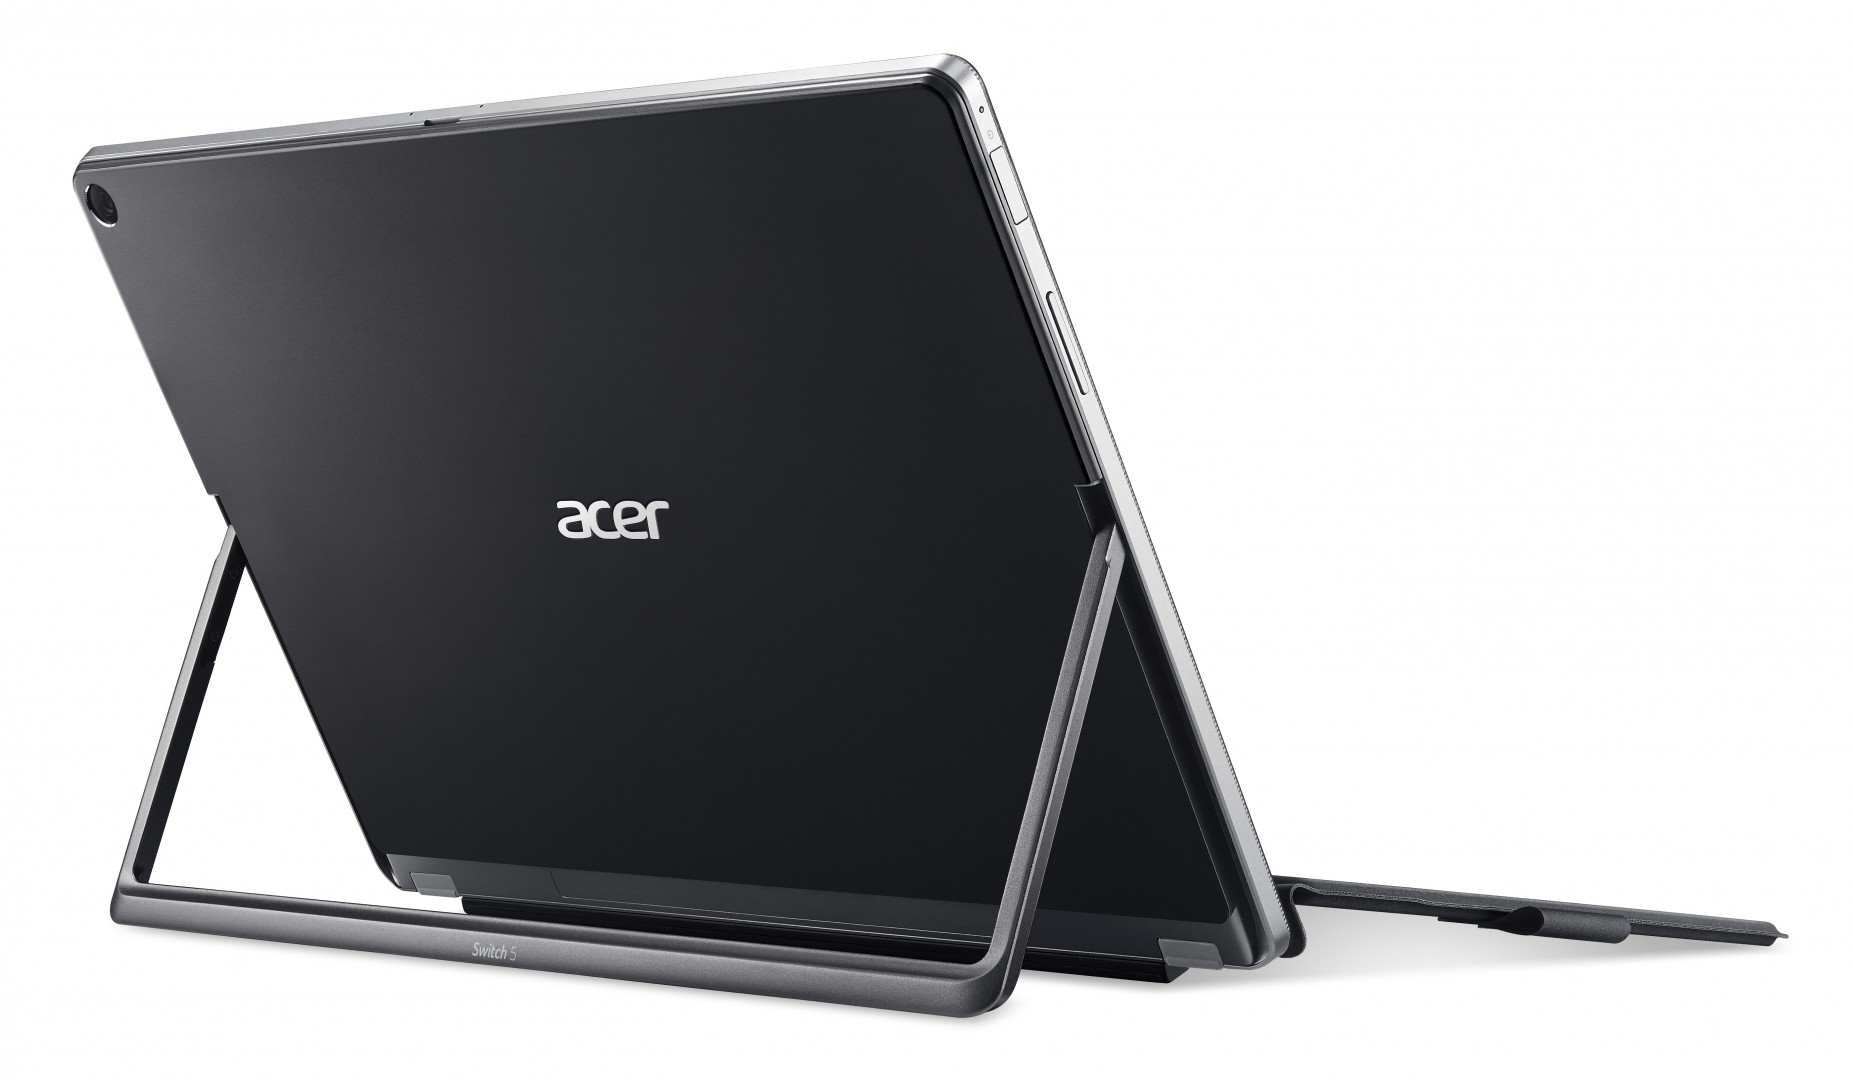 Acer Switch 5 price